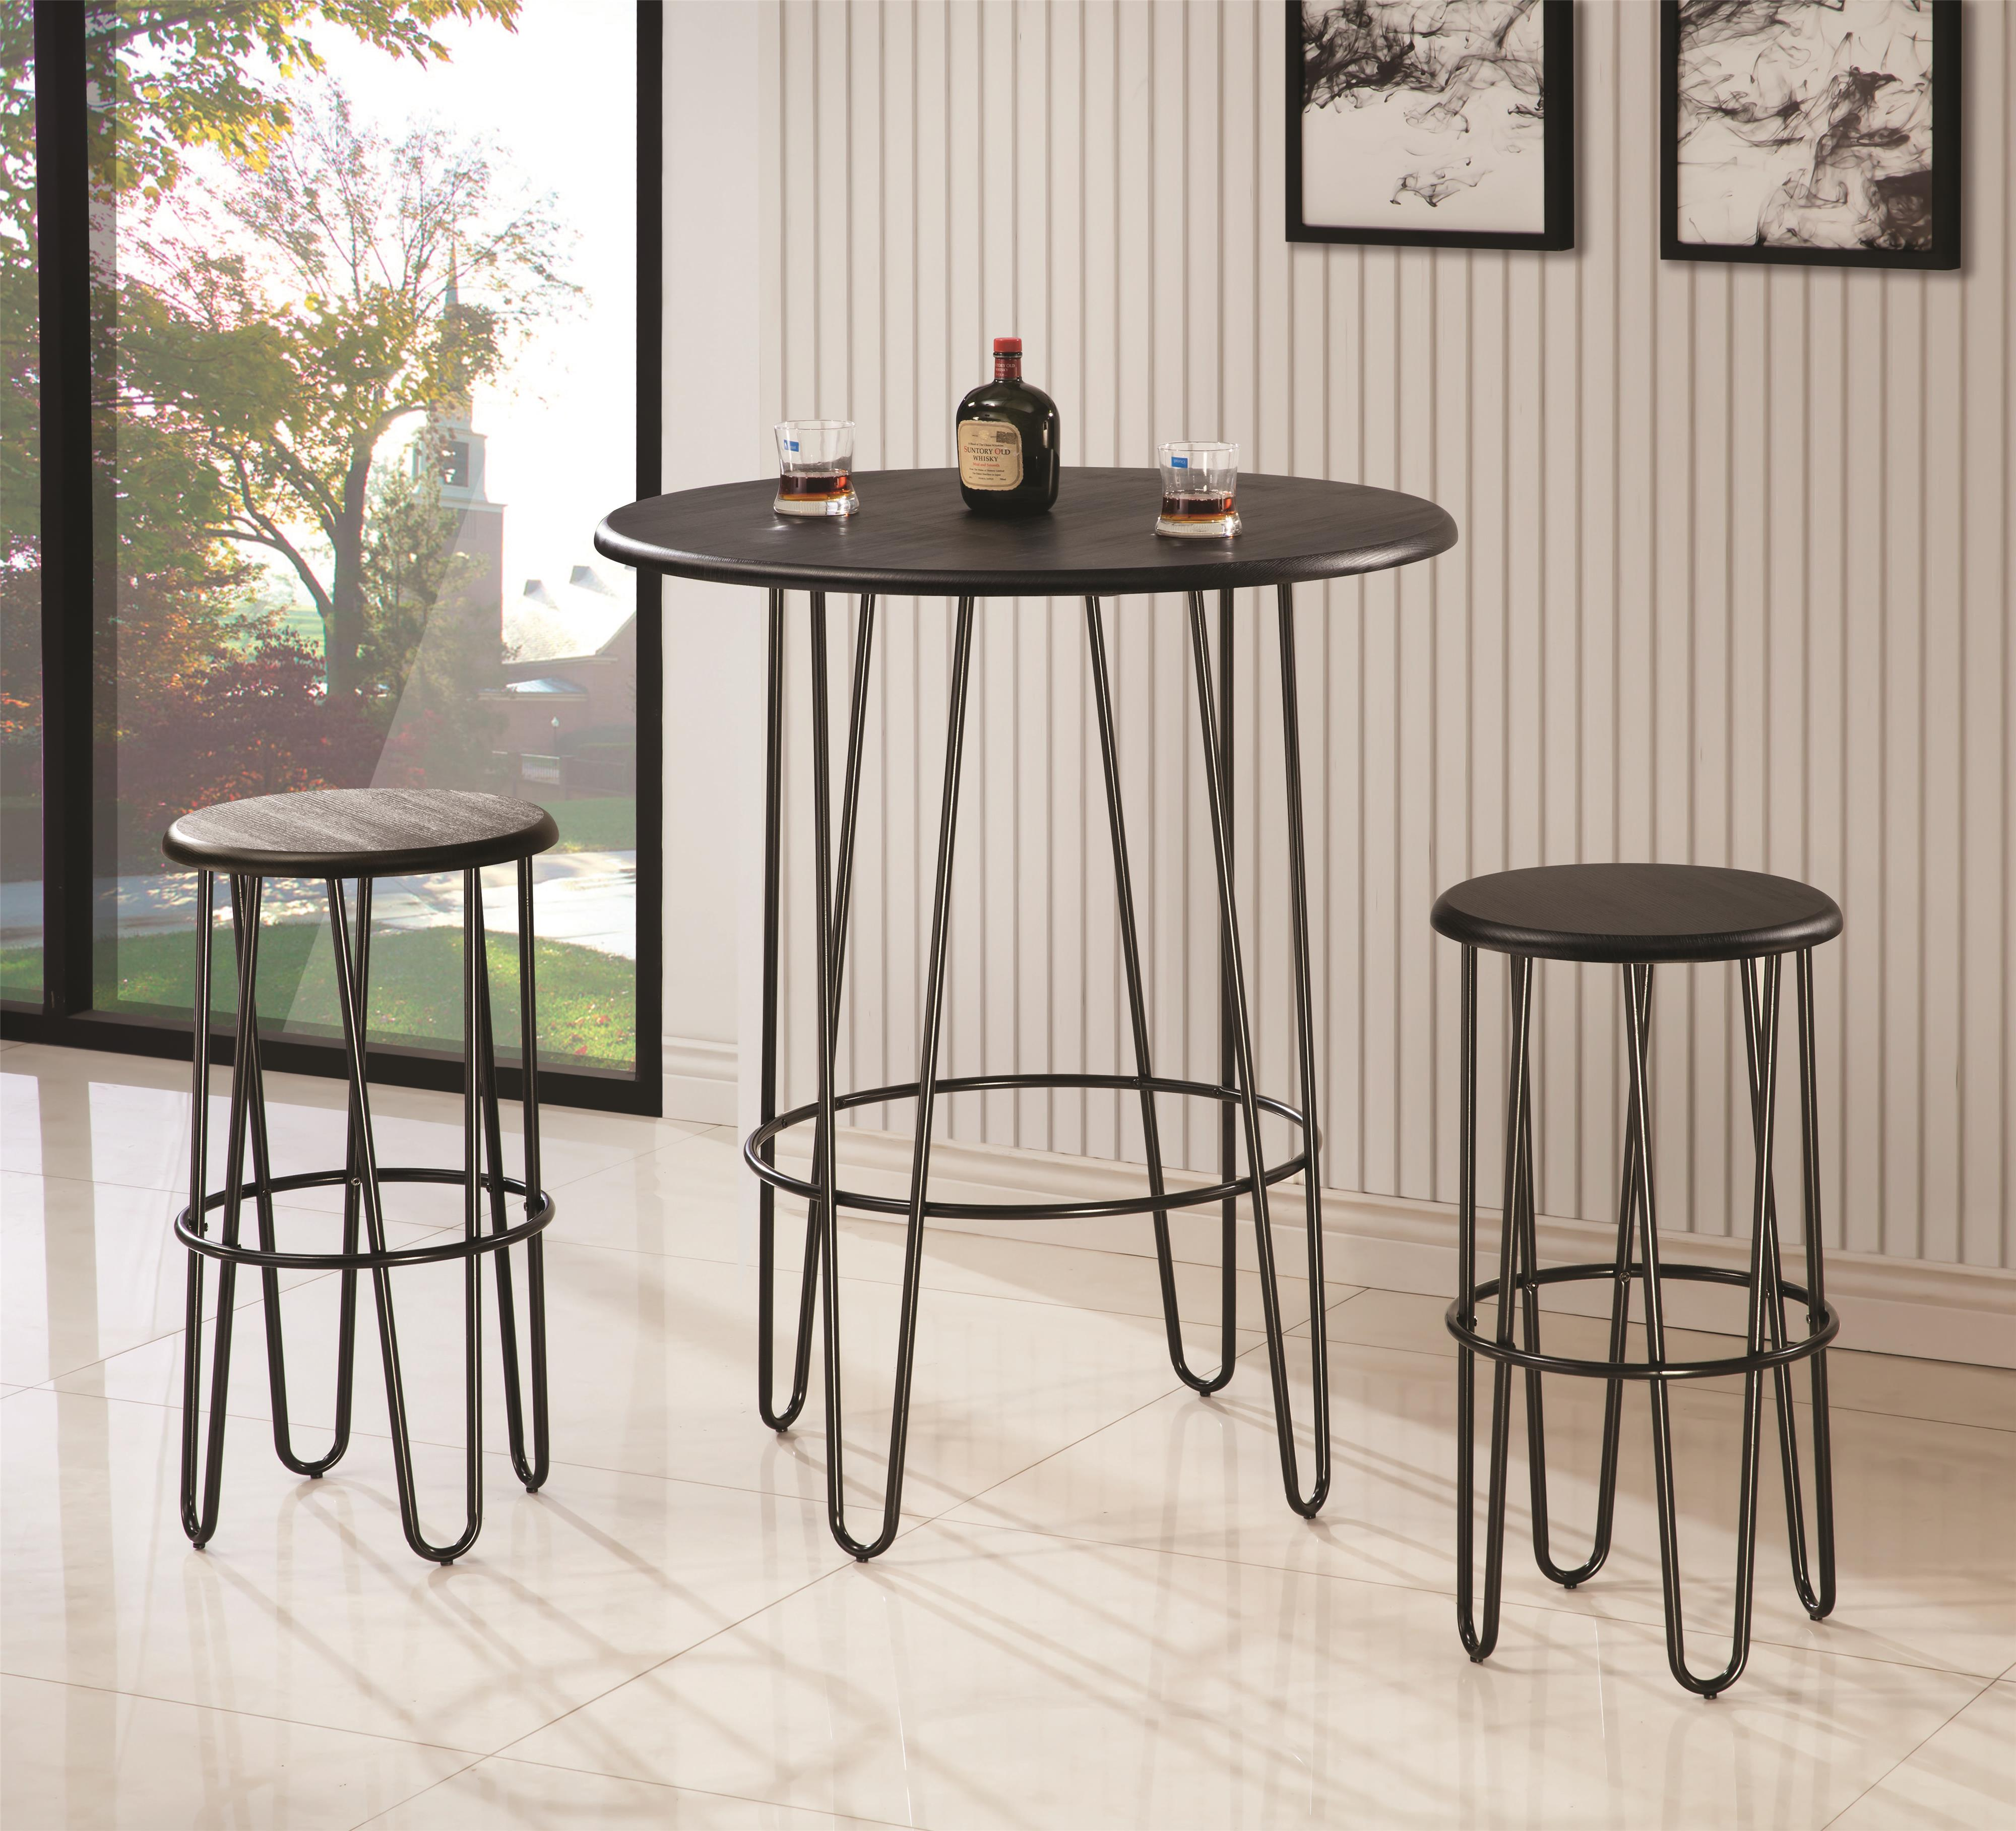 Coaster Bar Units and Bar Tables Bar Height Table Set - Item Number: 101423+2x101424